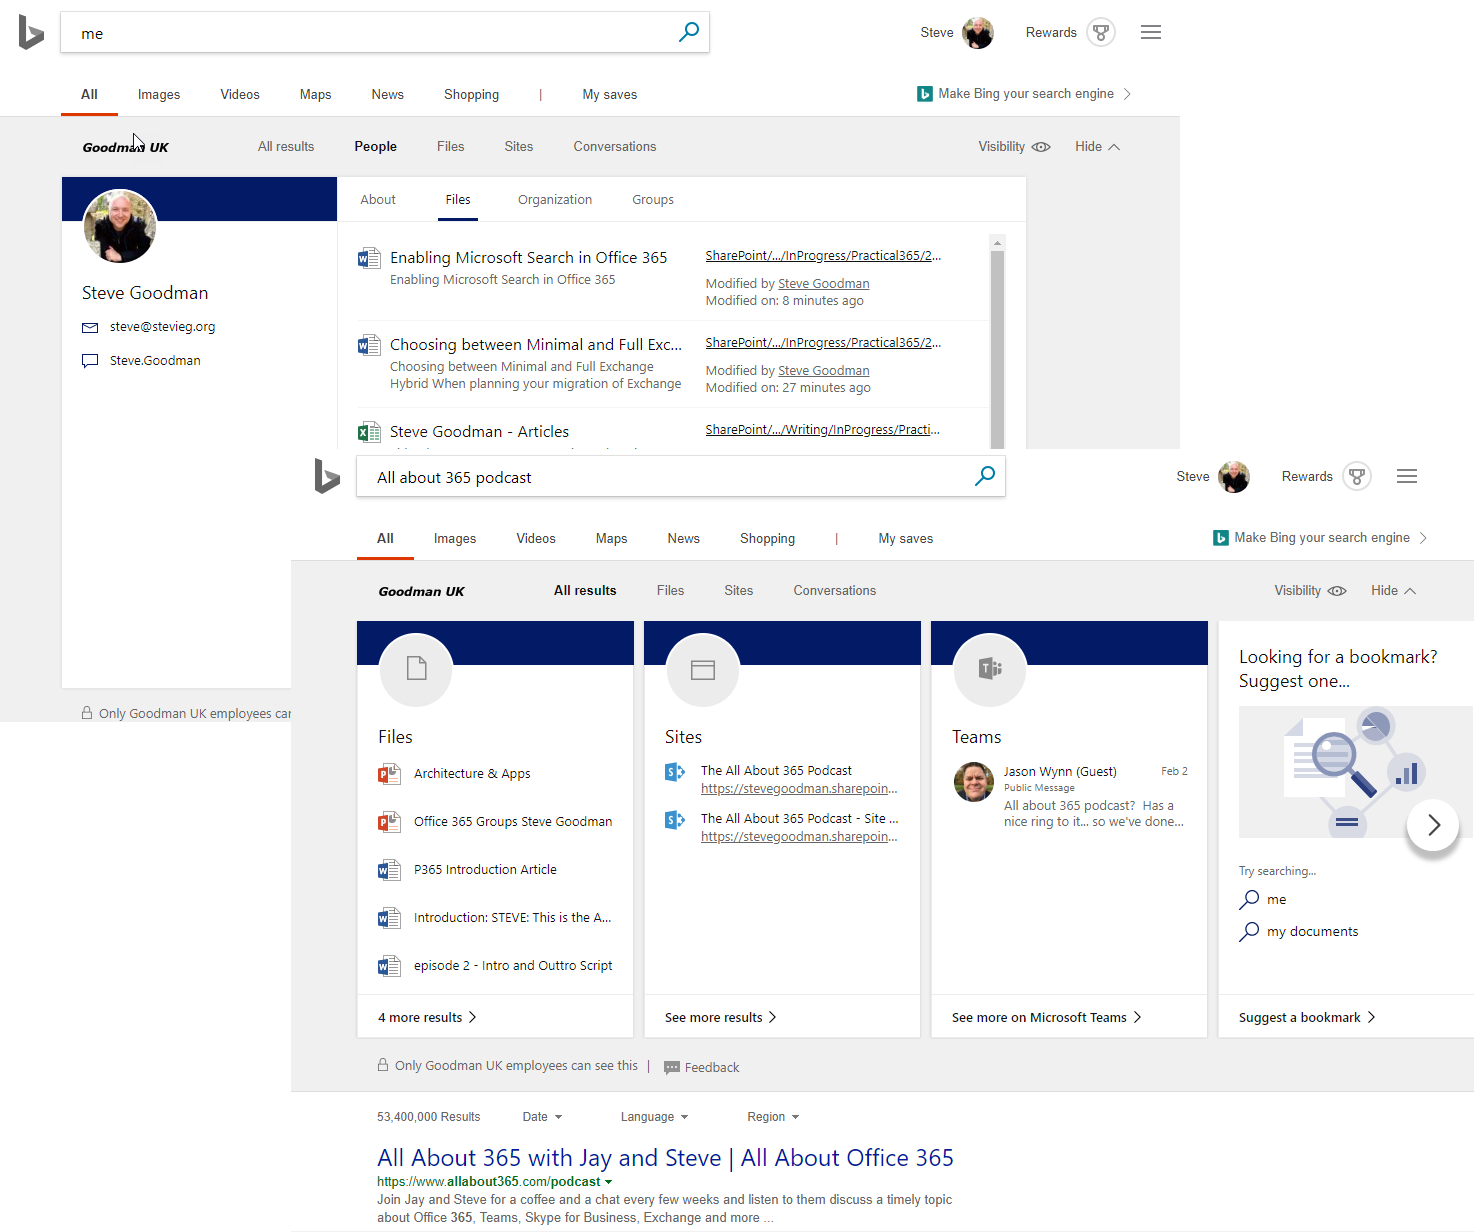 Microsoft Search integrated into Bing